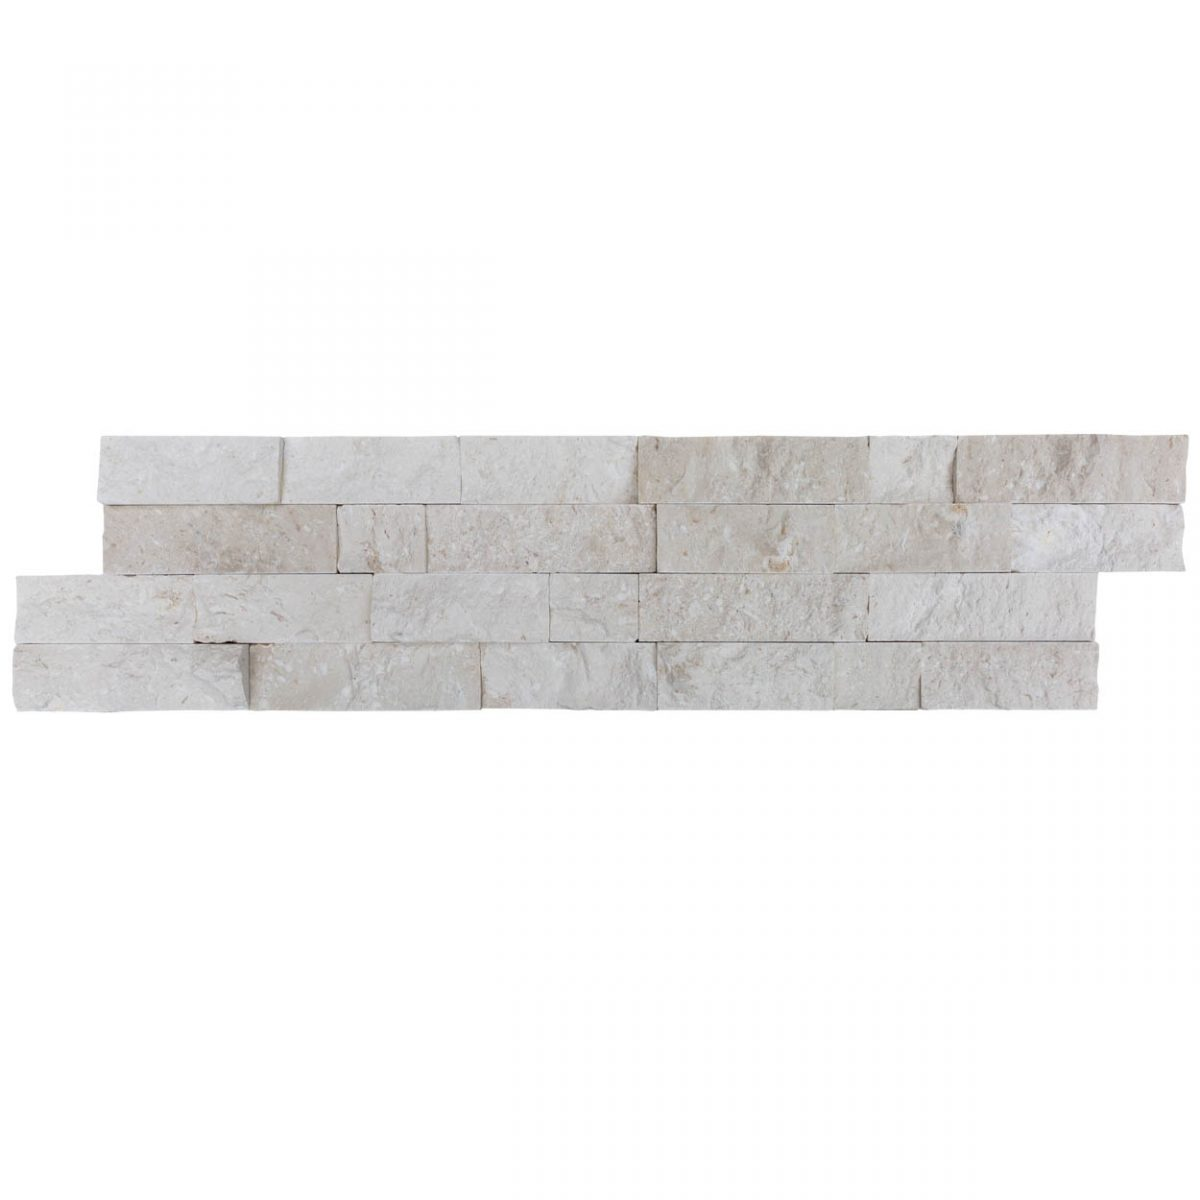 20012457-split-face-myra-beige-limestone-stacked-stone-ledger-panel-6x24-single-view-www.mayausatile.com